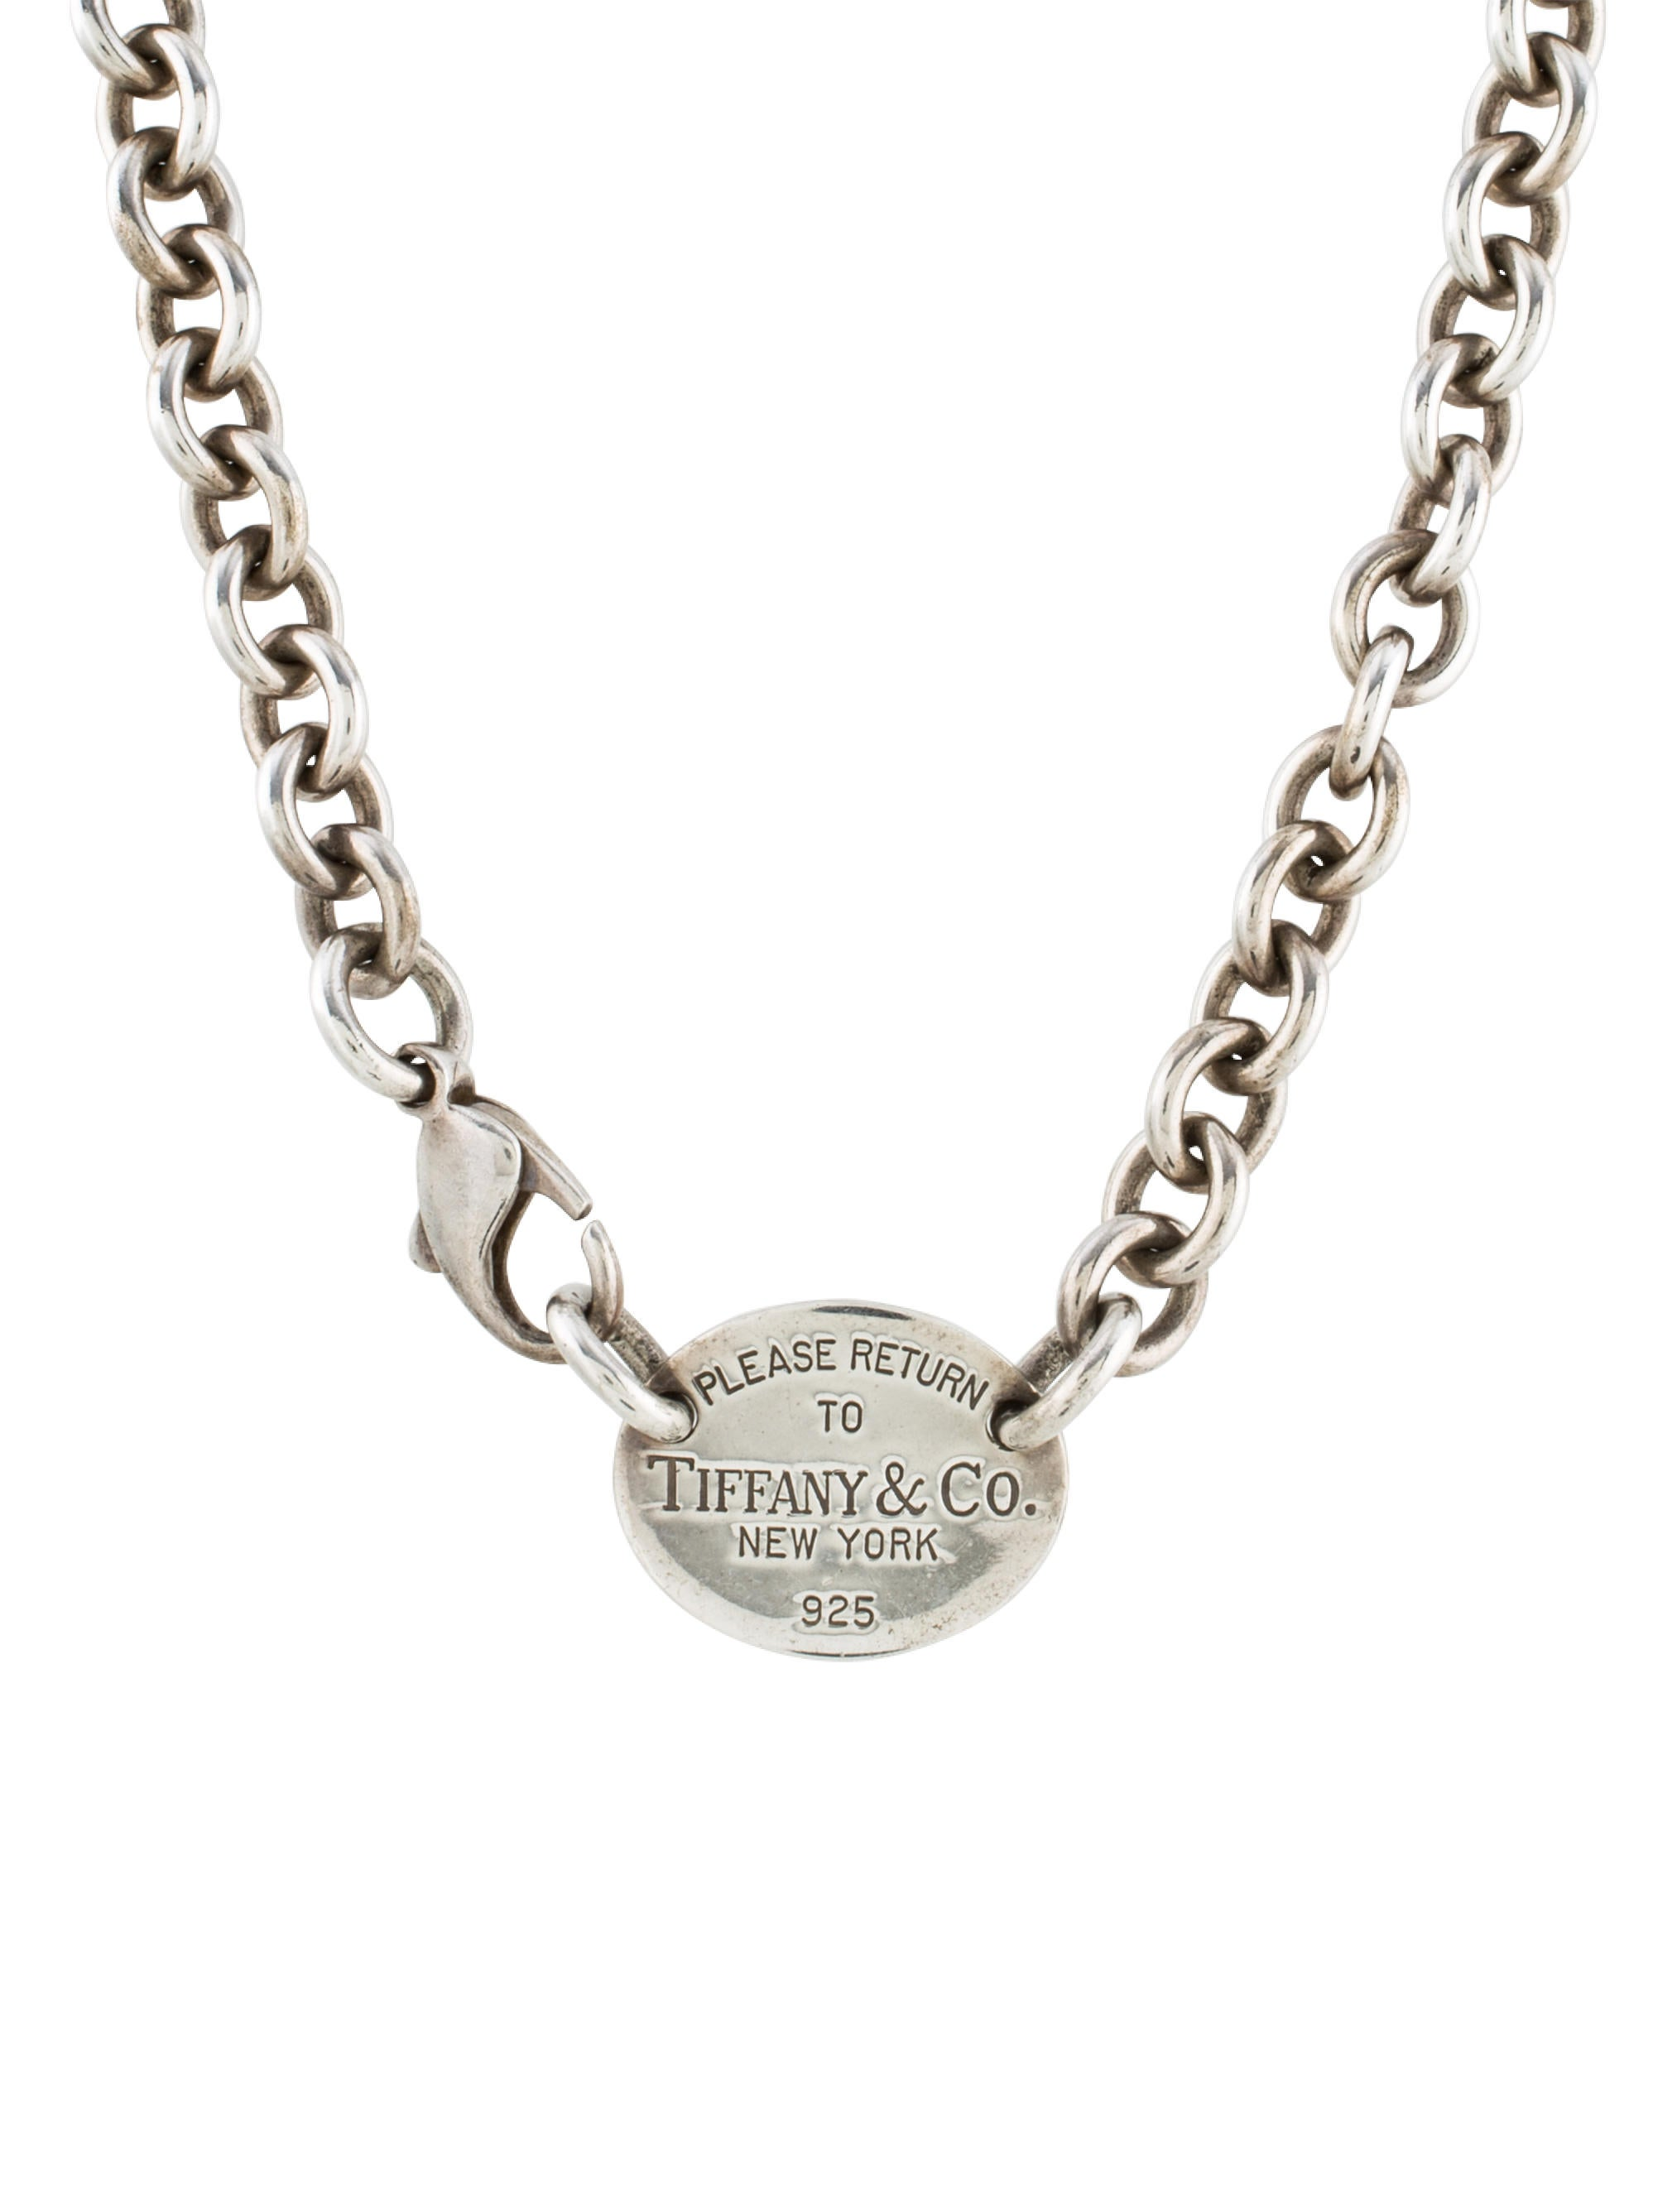 co return to oval tag necklace